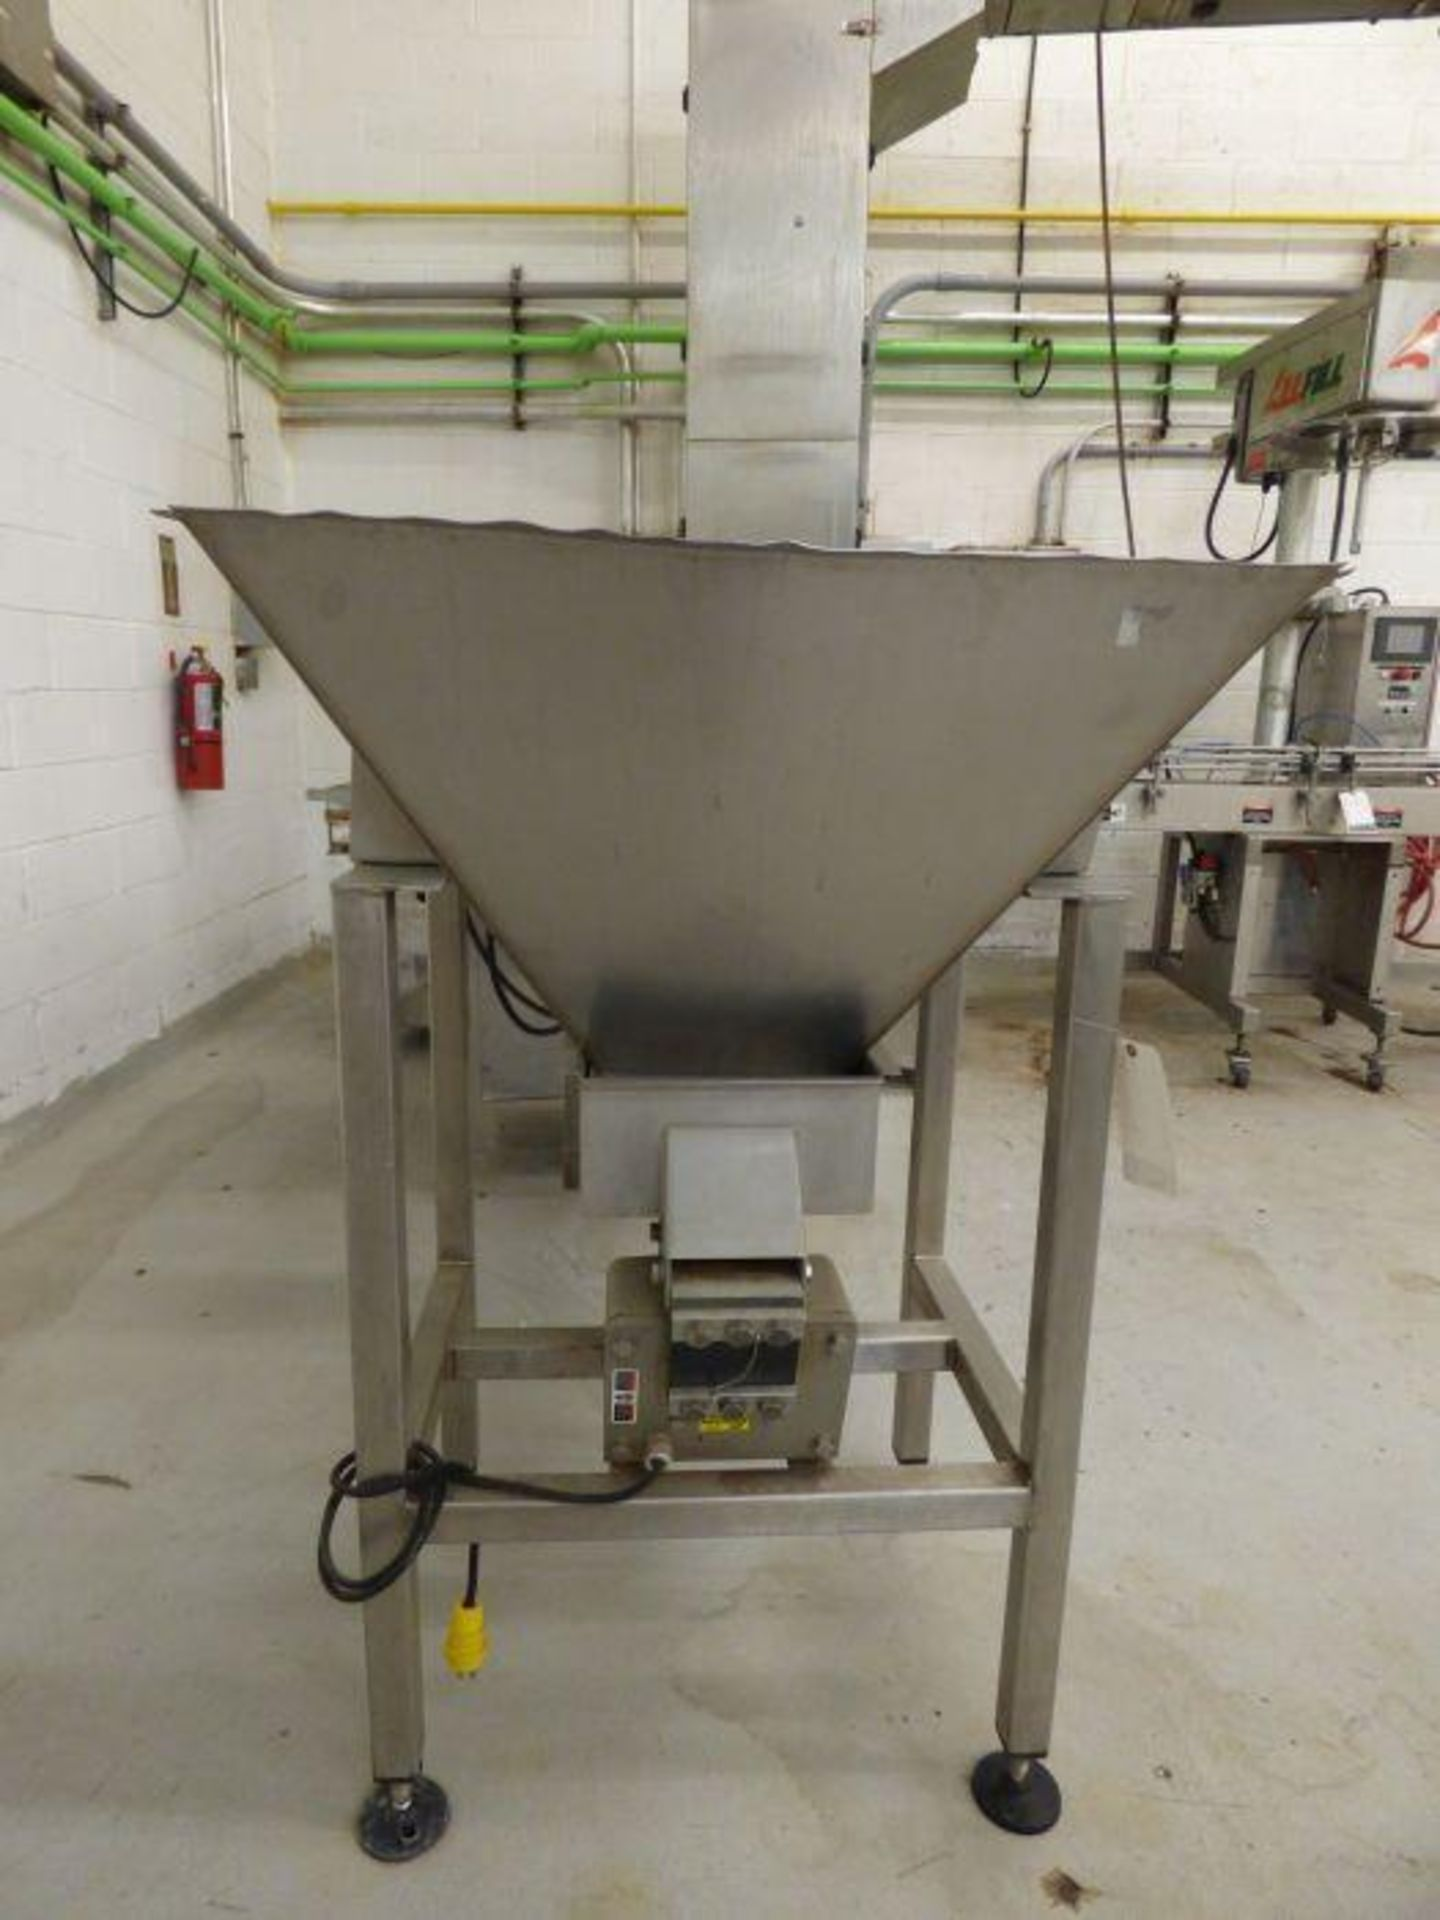 Lot 1194 - 2016 Ohlson Stainless Steel Bucket Elevator